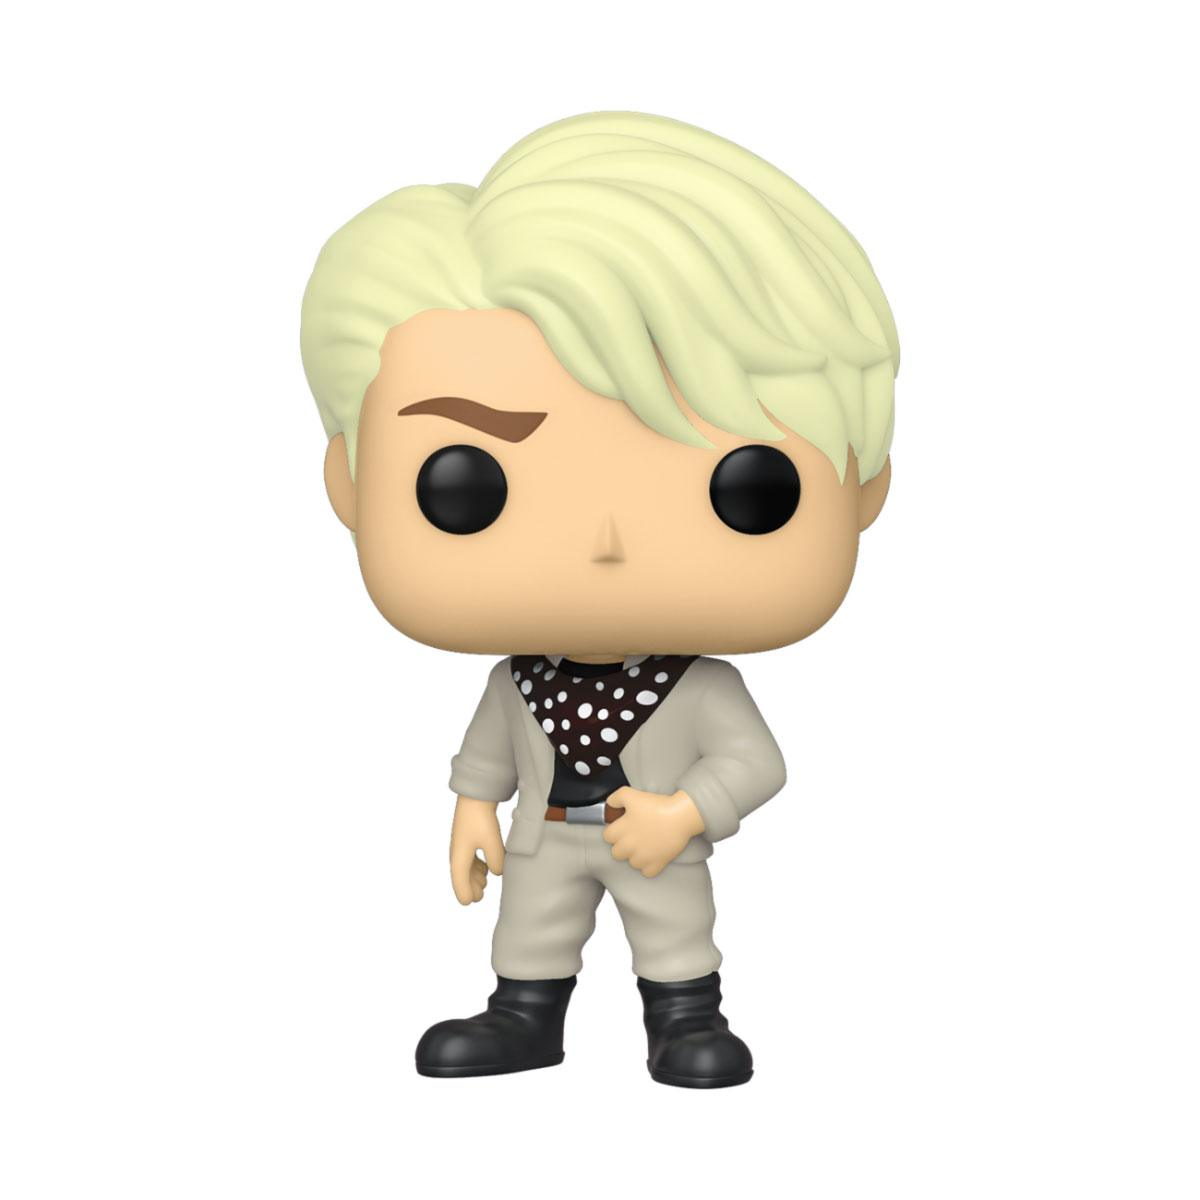 Duran Duran POP! Rocks Vinyl Figure Andy Taylor 9 cm